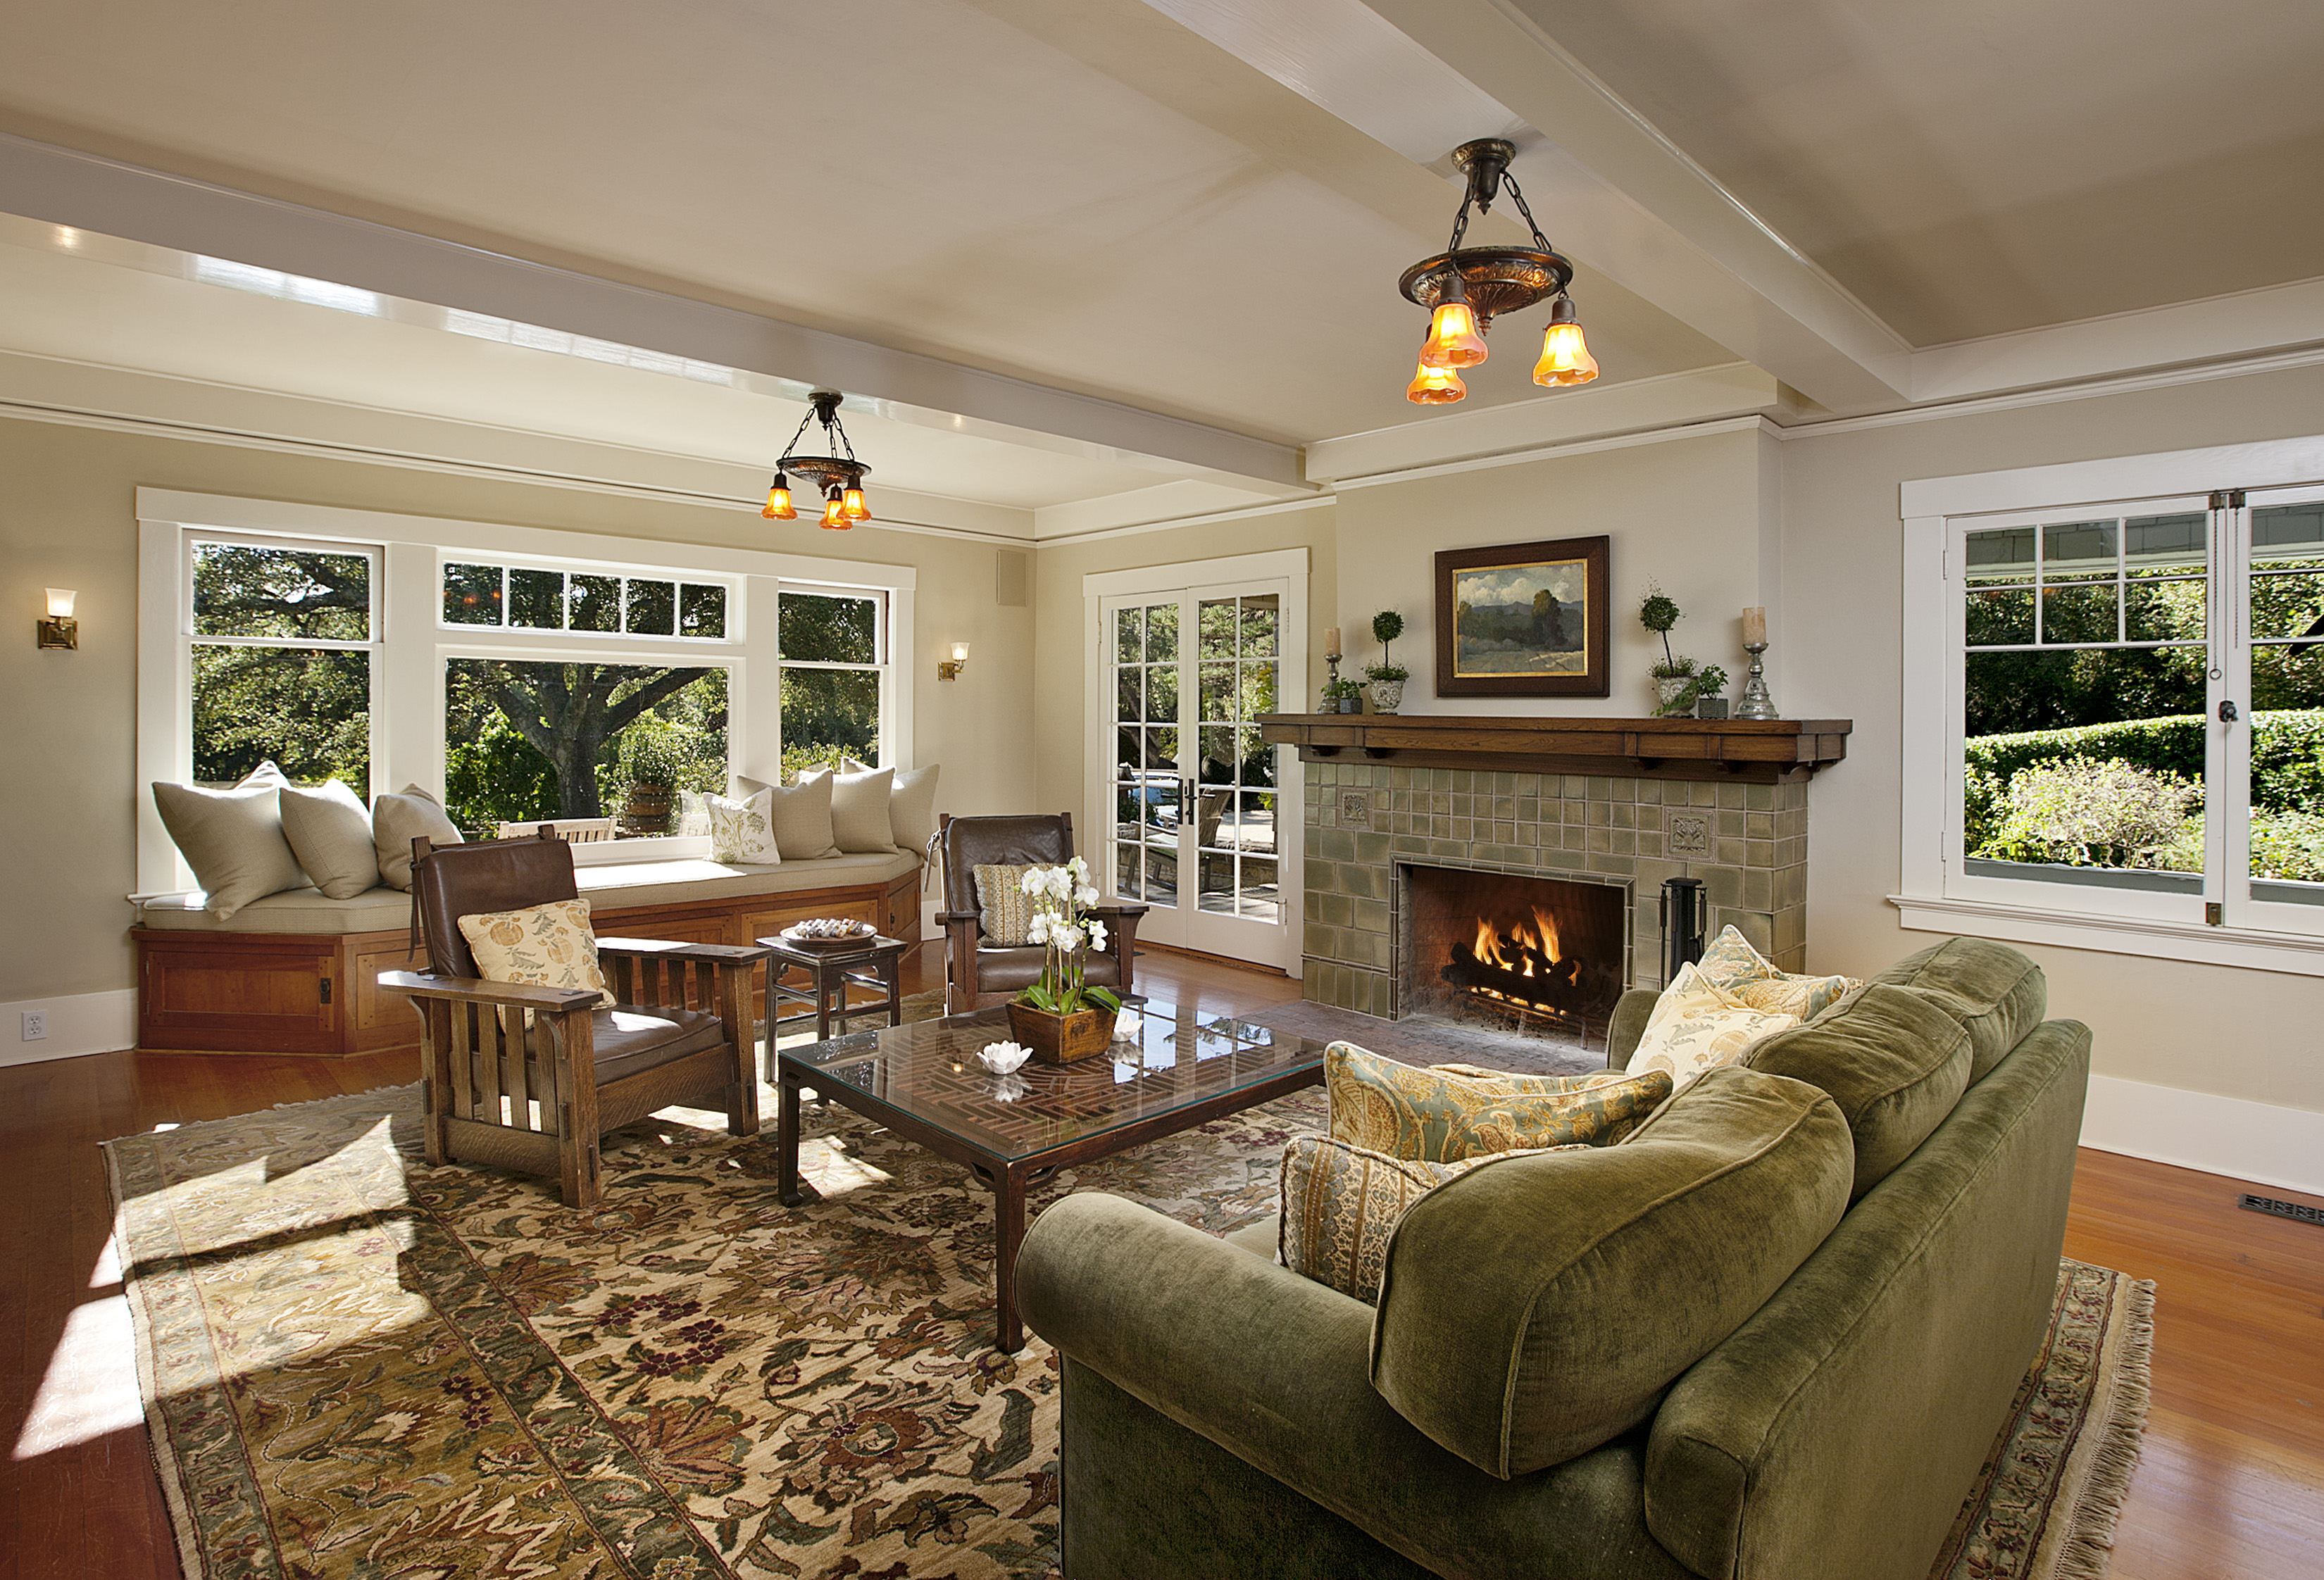 Popular home styles for 2012 montecito real estate - Interior decorating living rooms ...